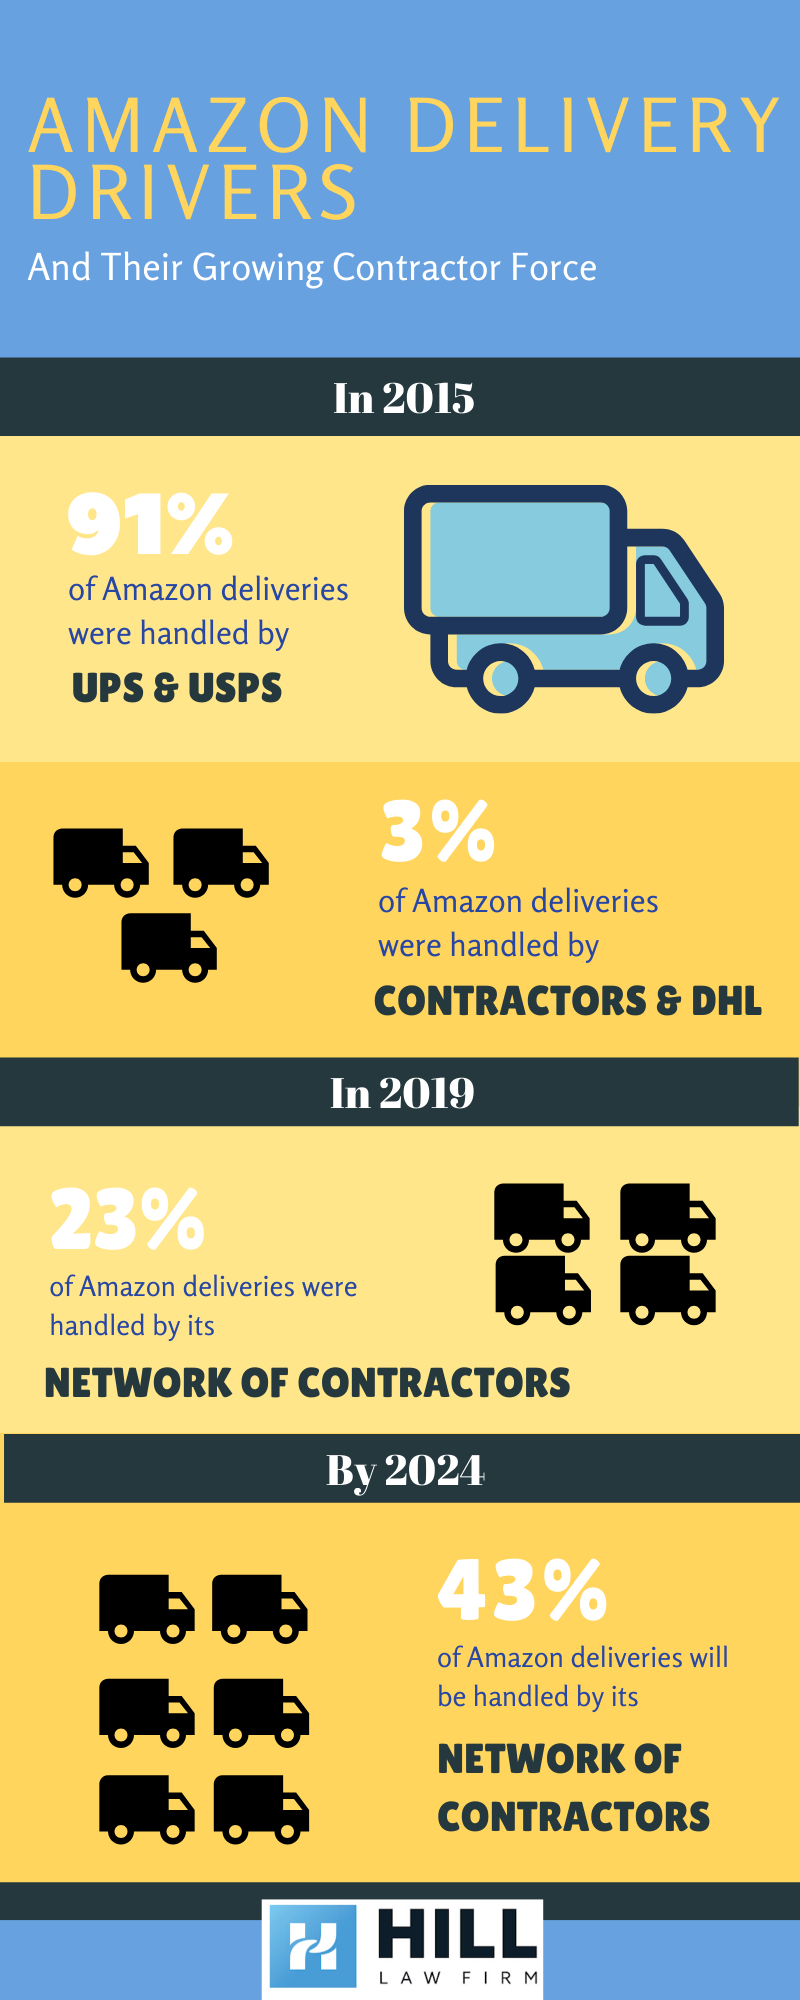 Infographic about Amazon delivery drivers